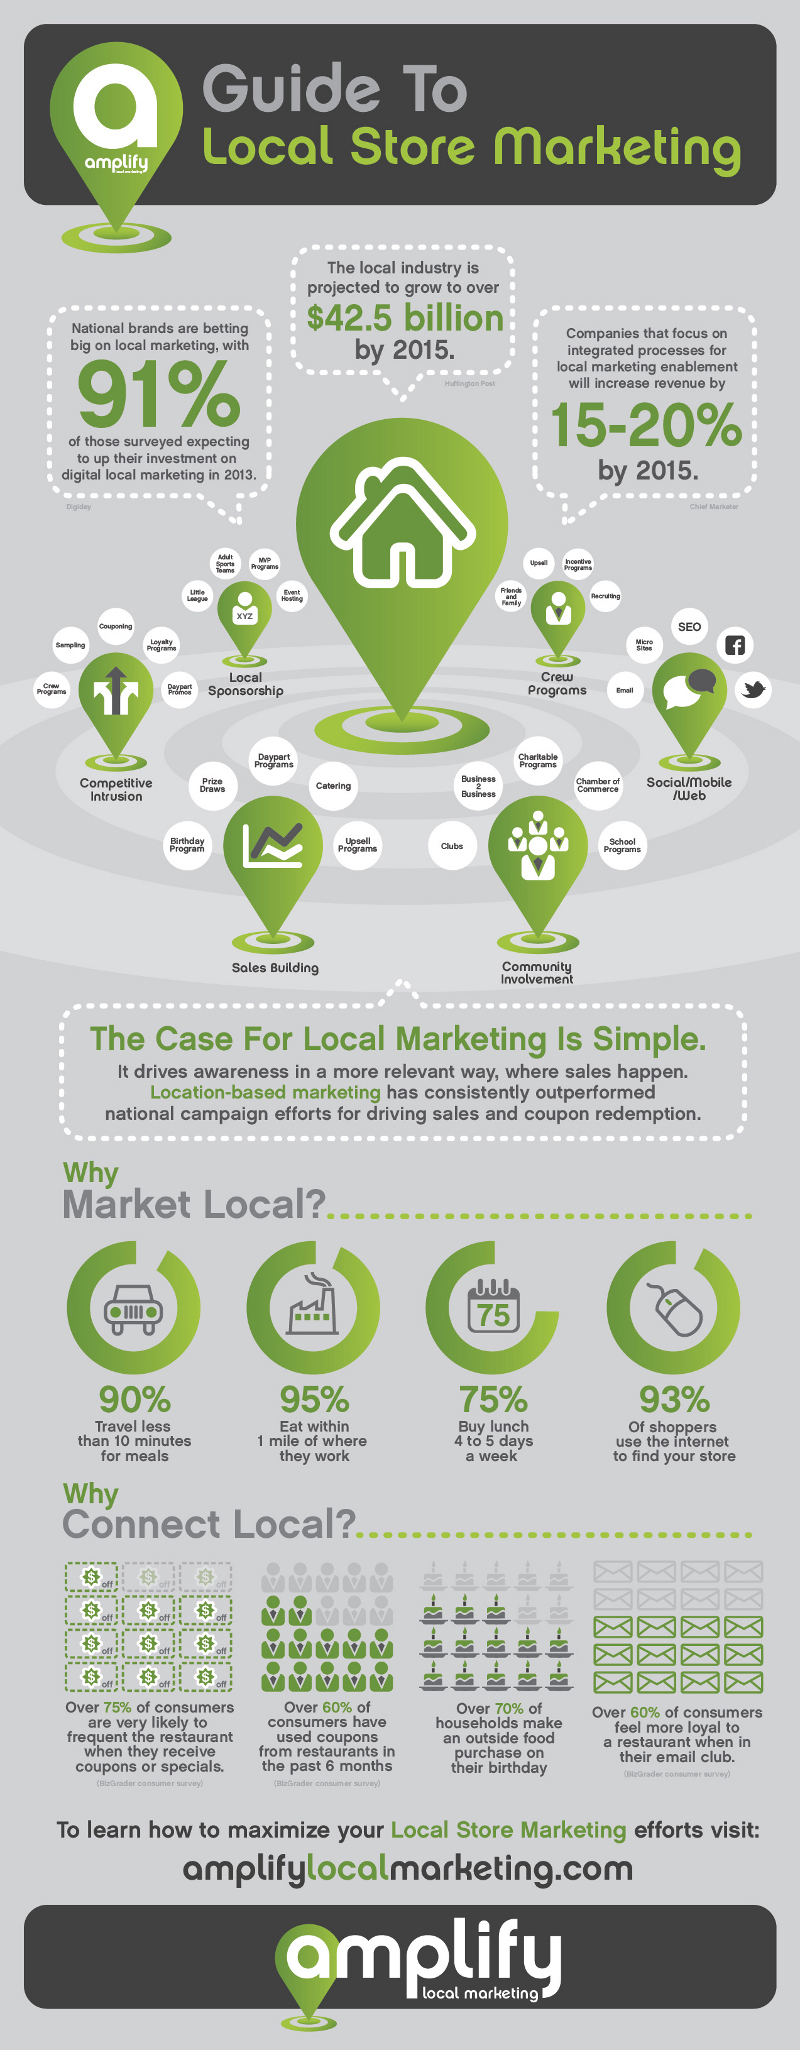 A Guide to Local Store Marketing